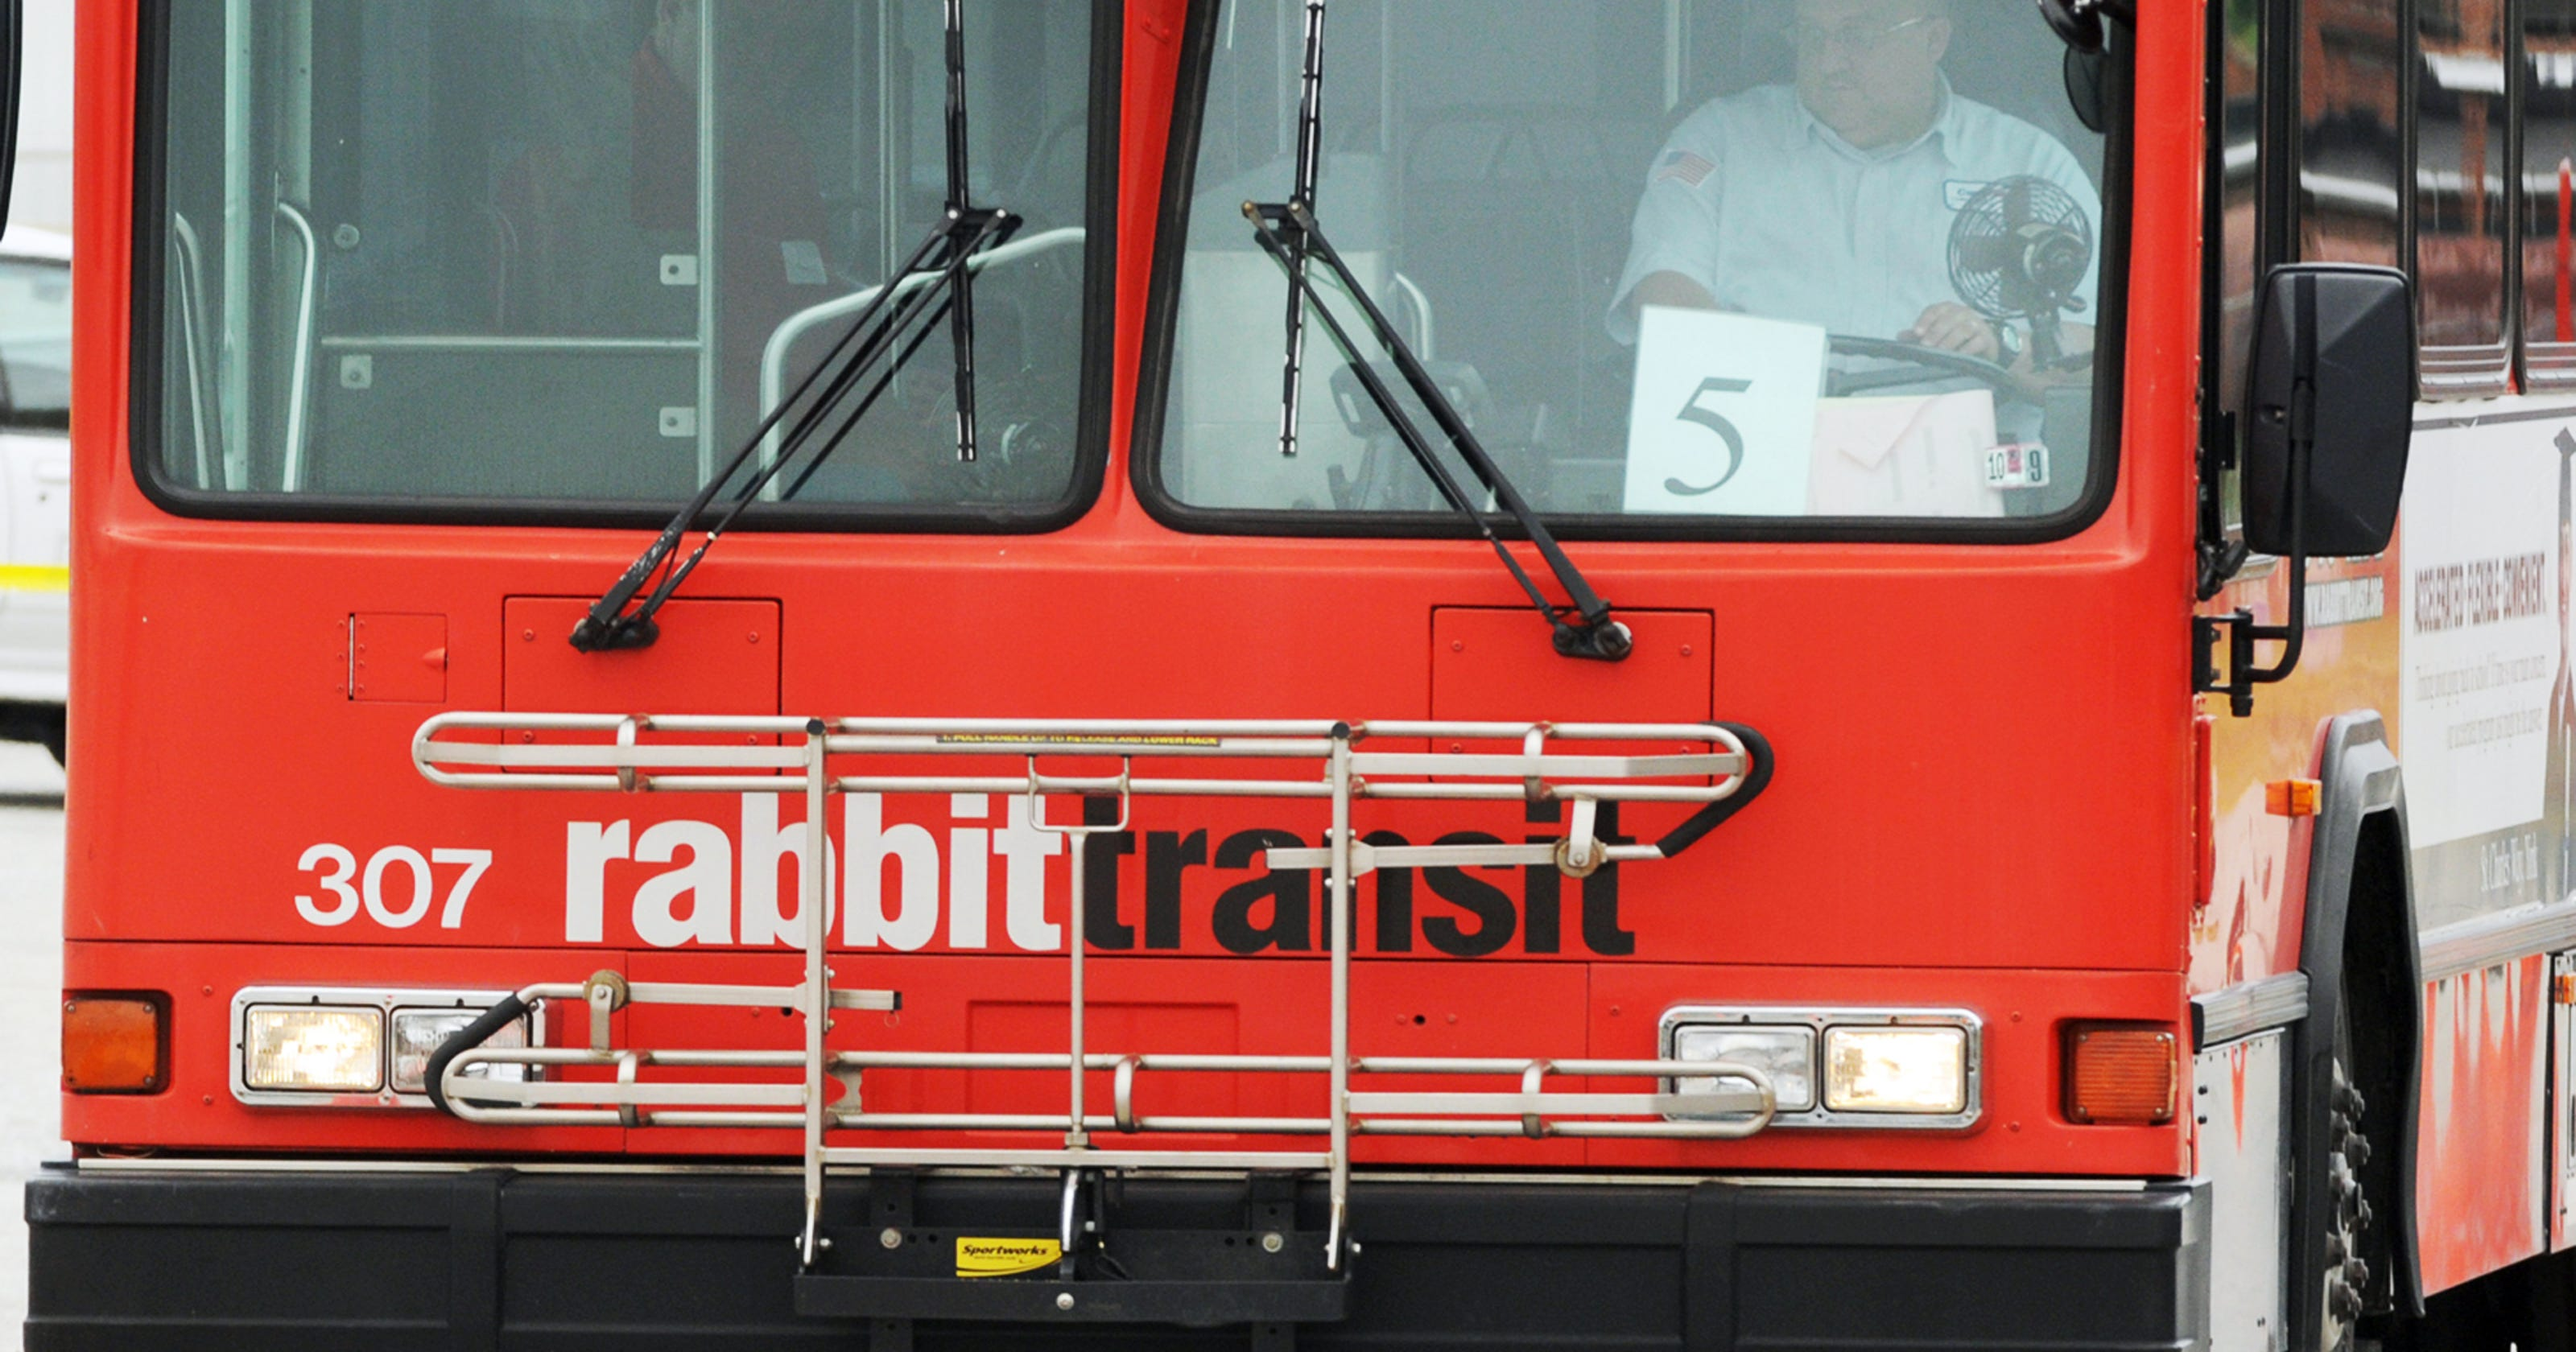 rabbittransit expands into columbia county